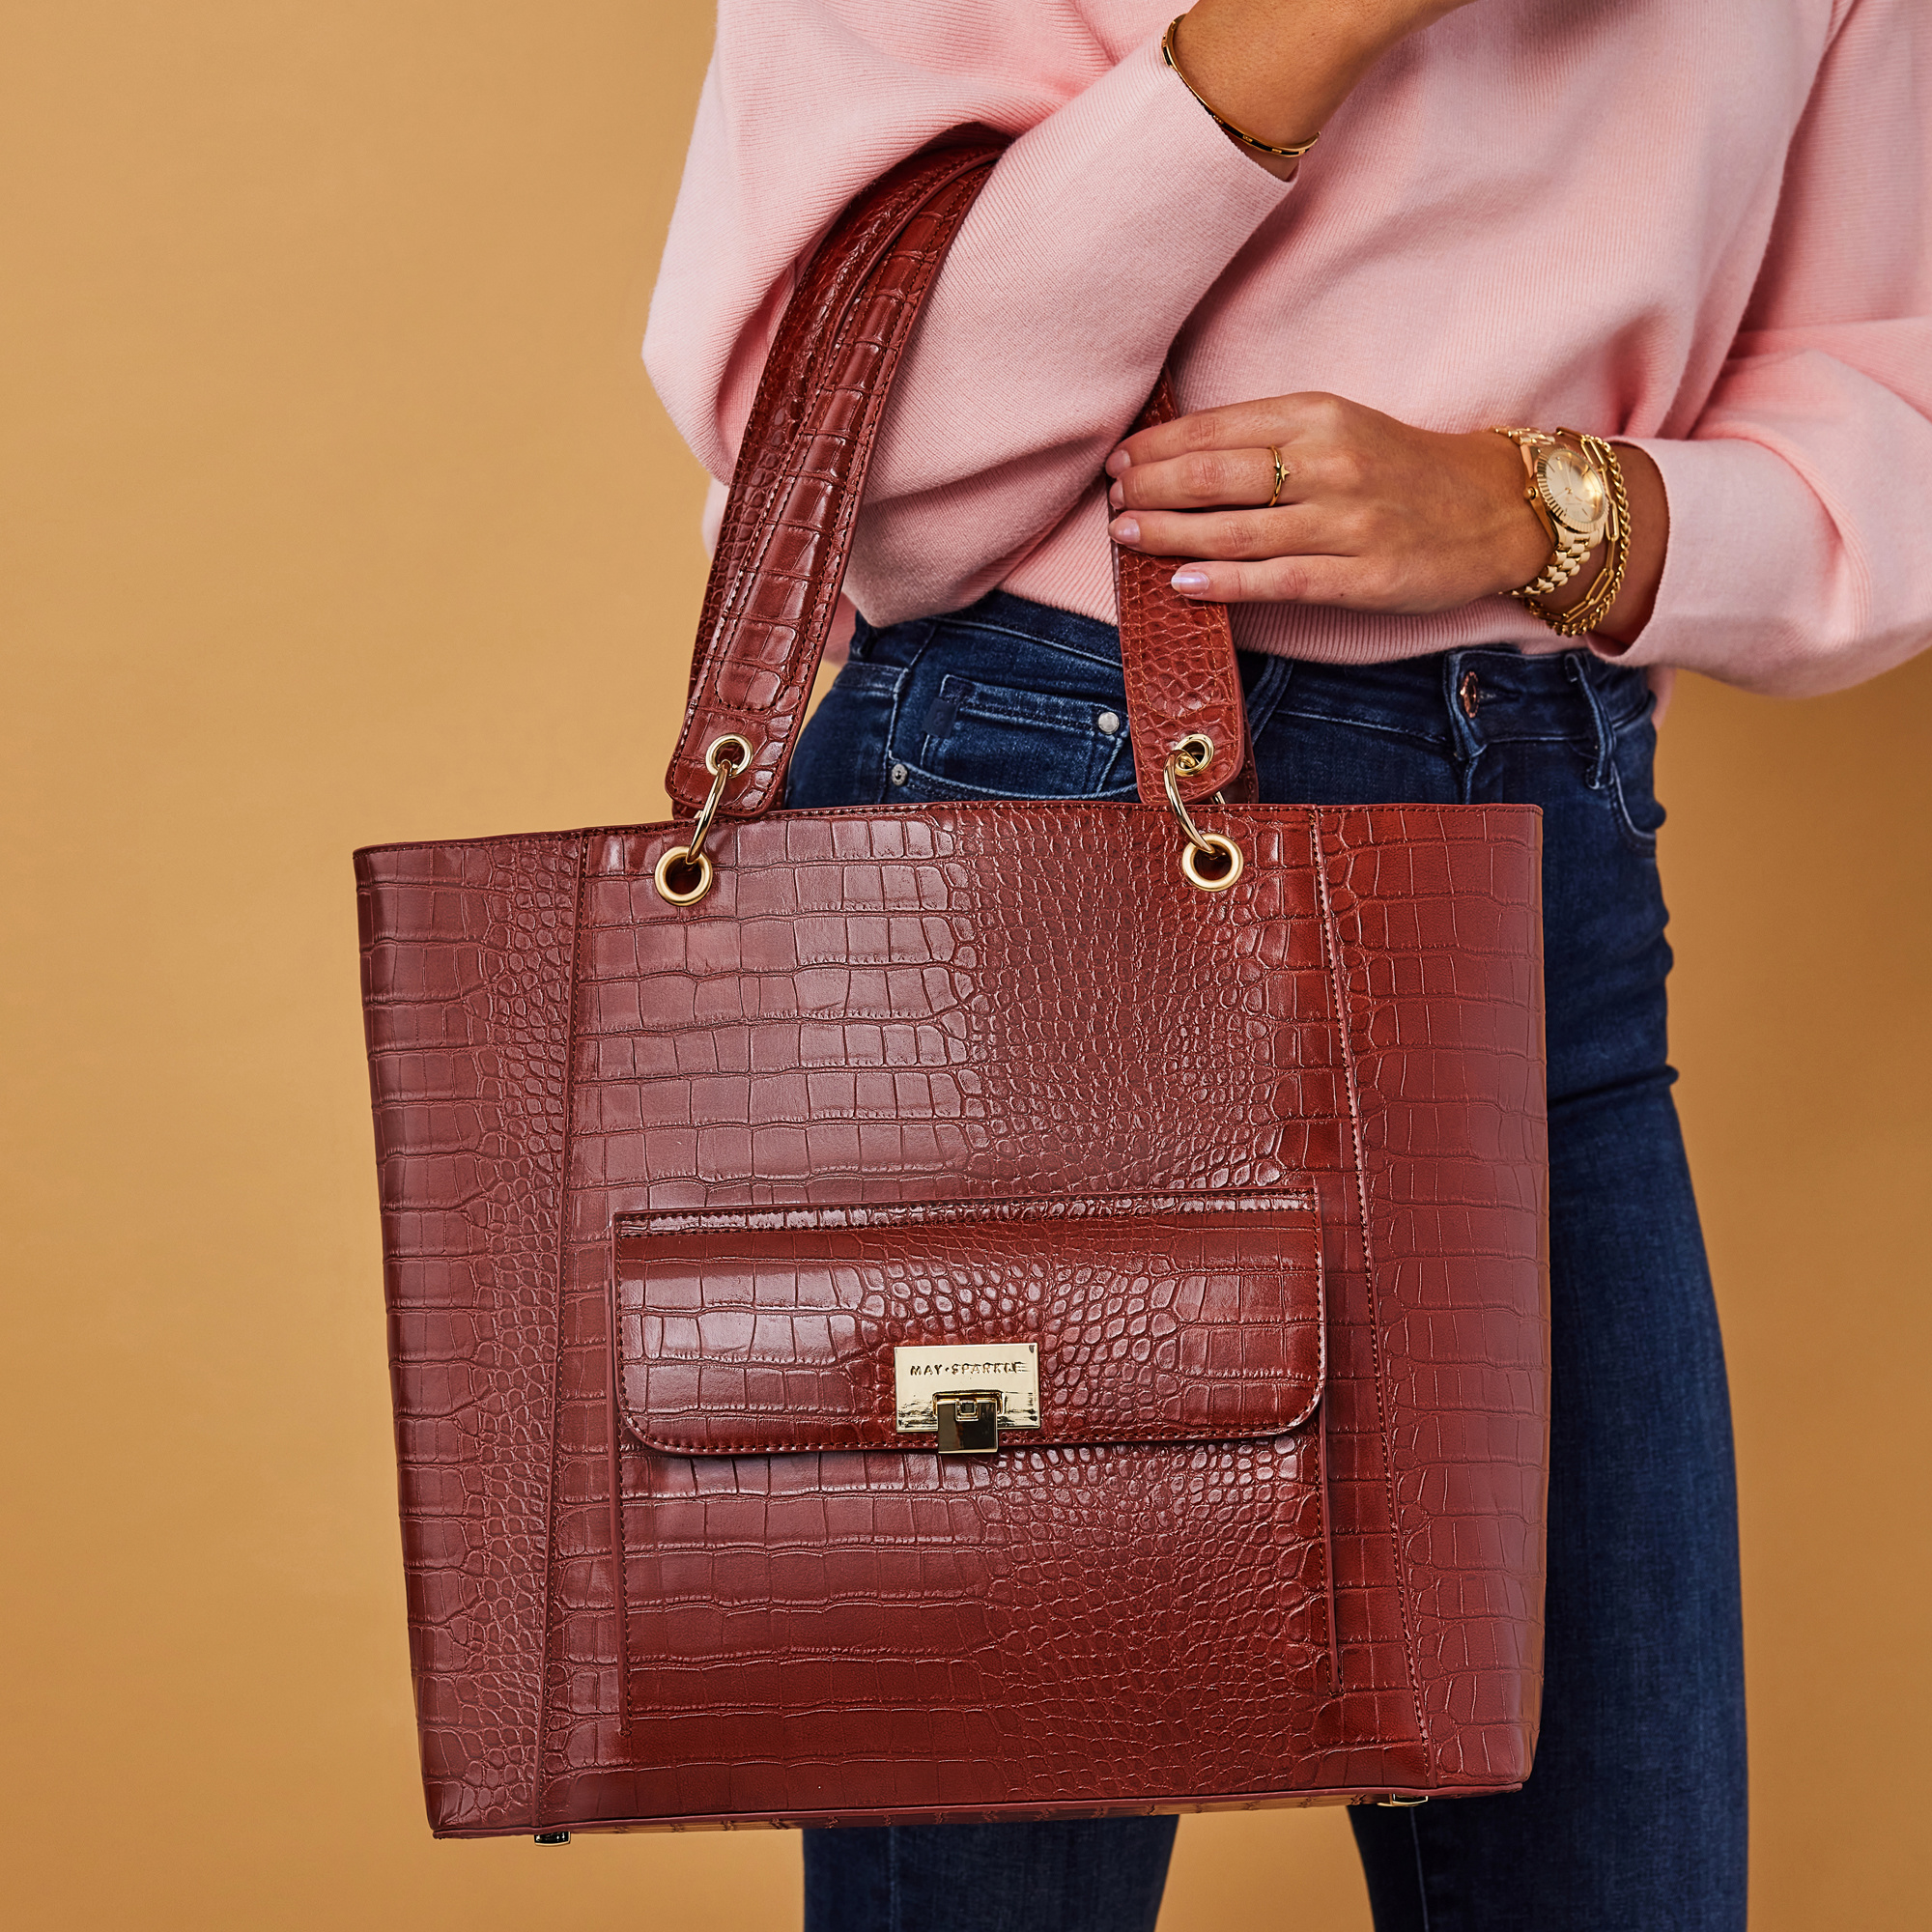 May Sparkle The Daily cognac croco shopper